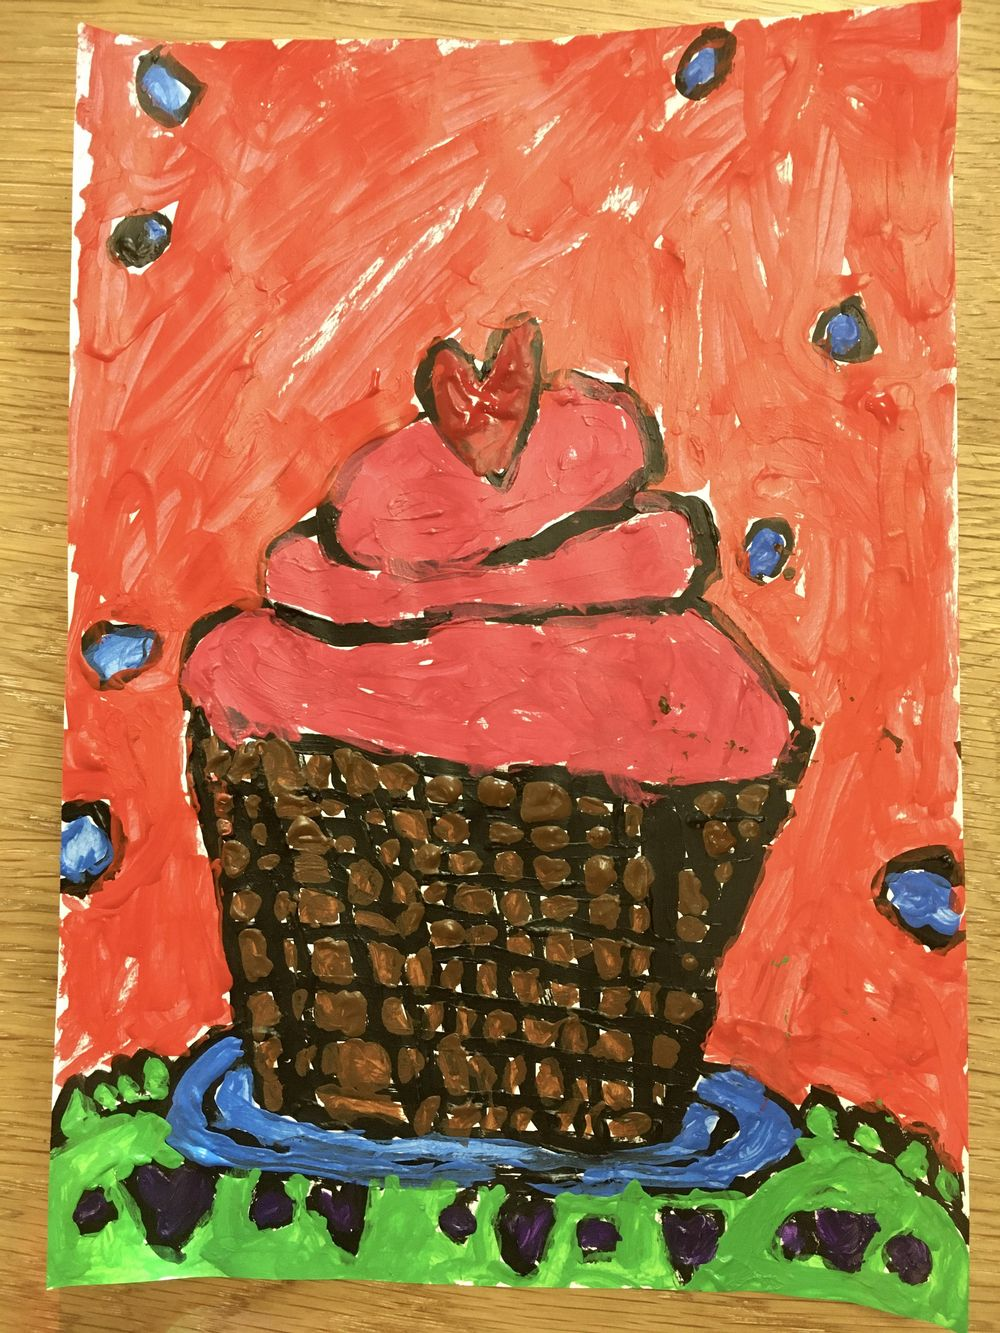 delicious cupcake - image 1 - student project